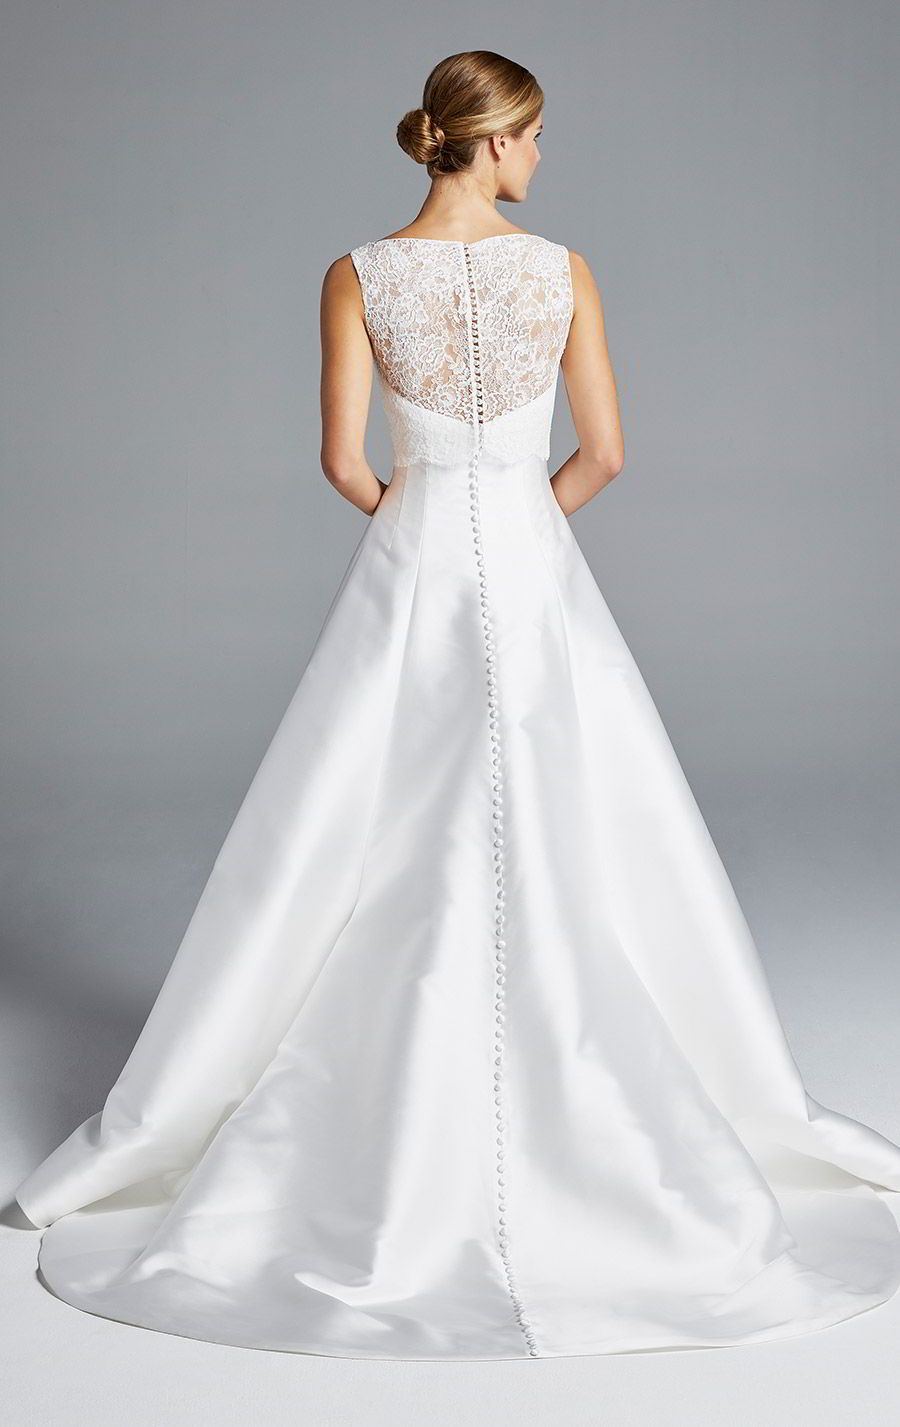 Anne barge spring wedding dresses wedding ideas pinterest